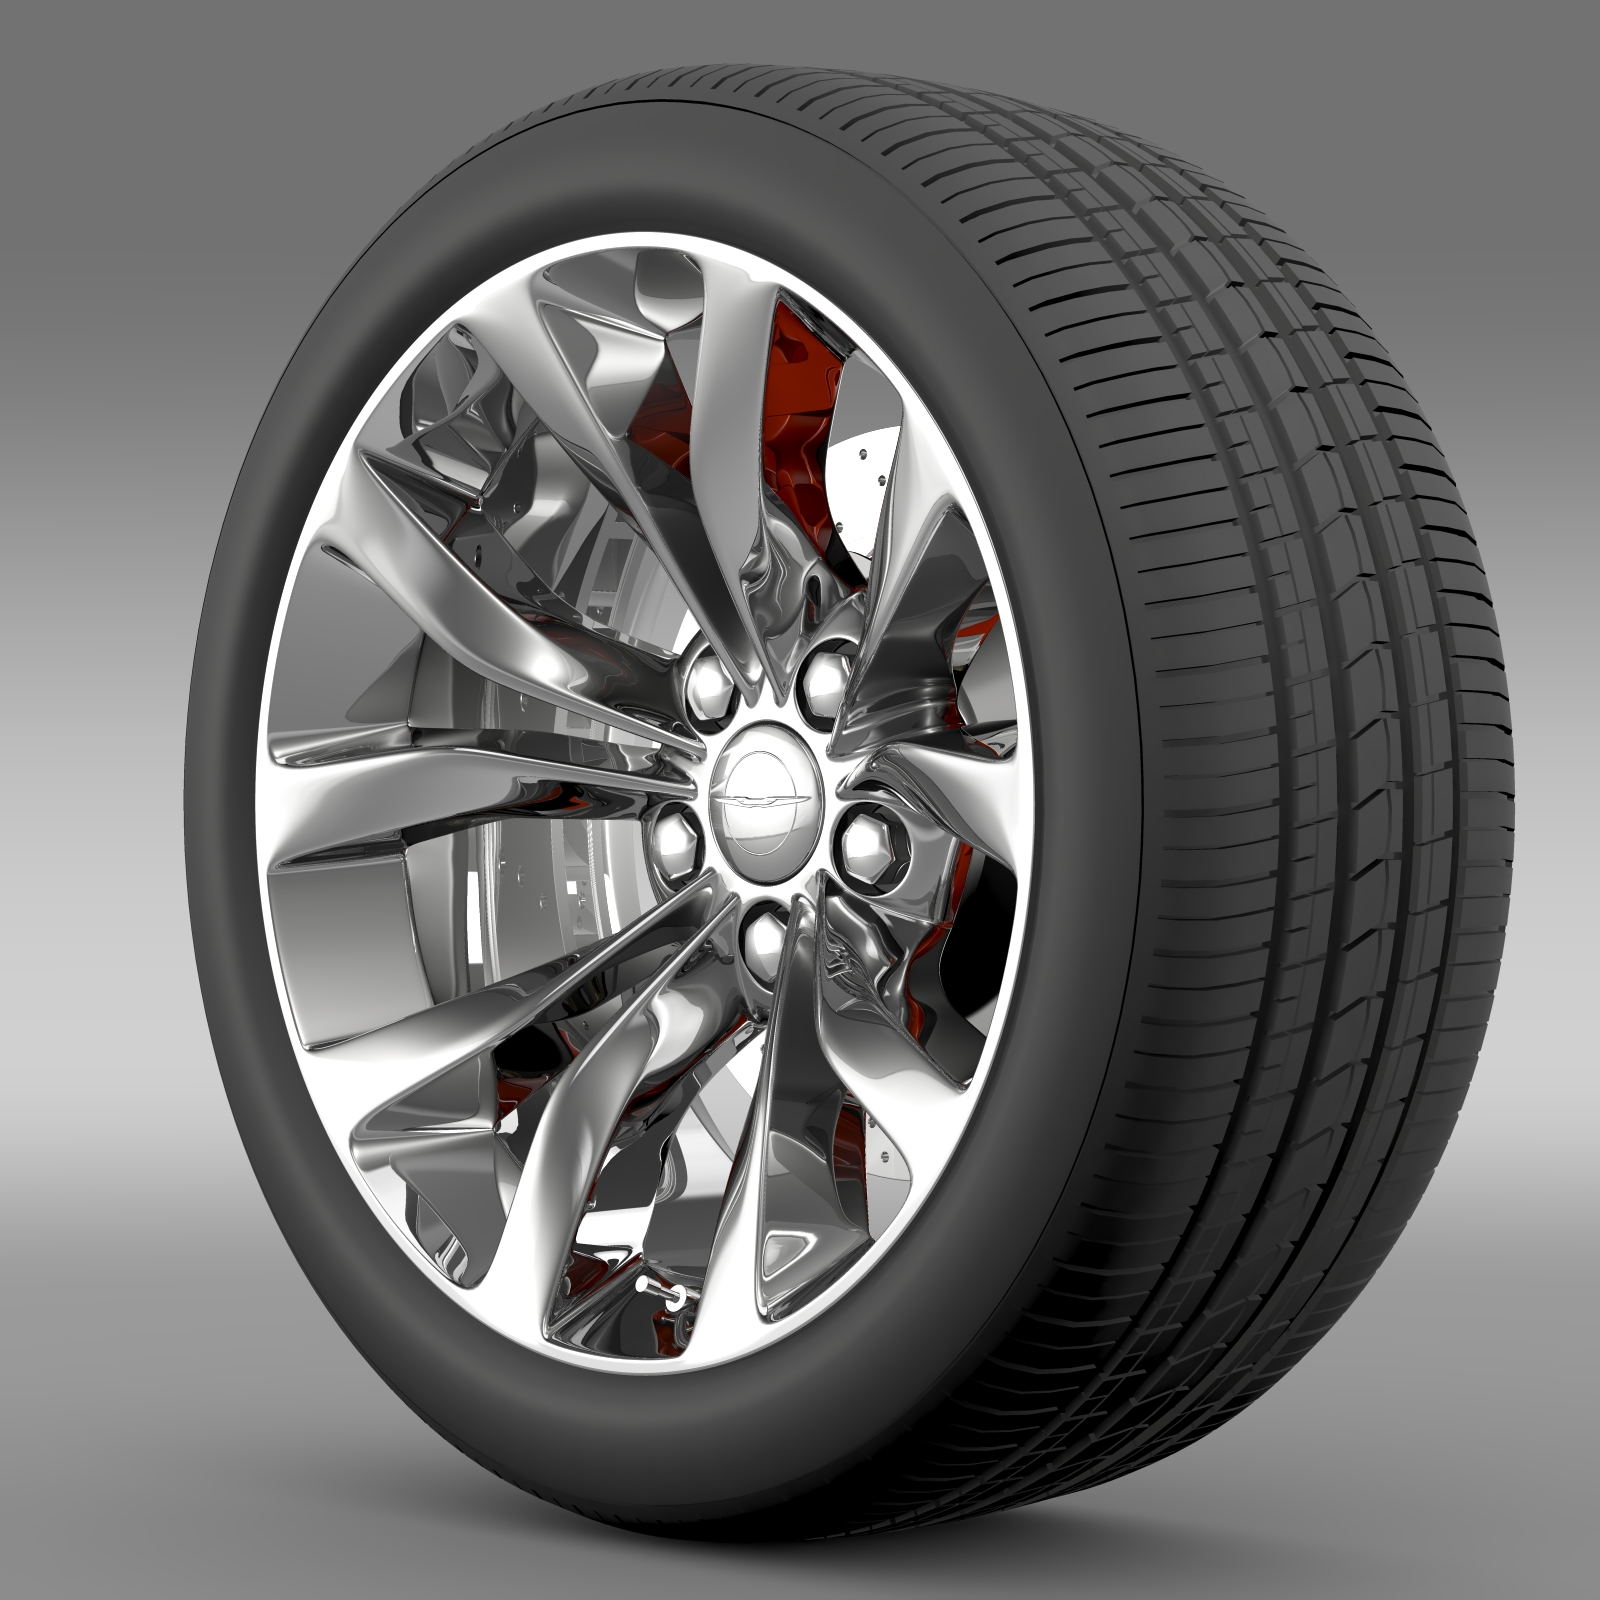 chrysler 300 limited 2015 wheel 3d model 3ds max fbx c4d lwo ma mb hrc xsi obj 212744